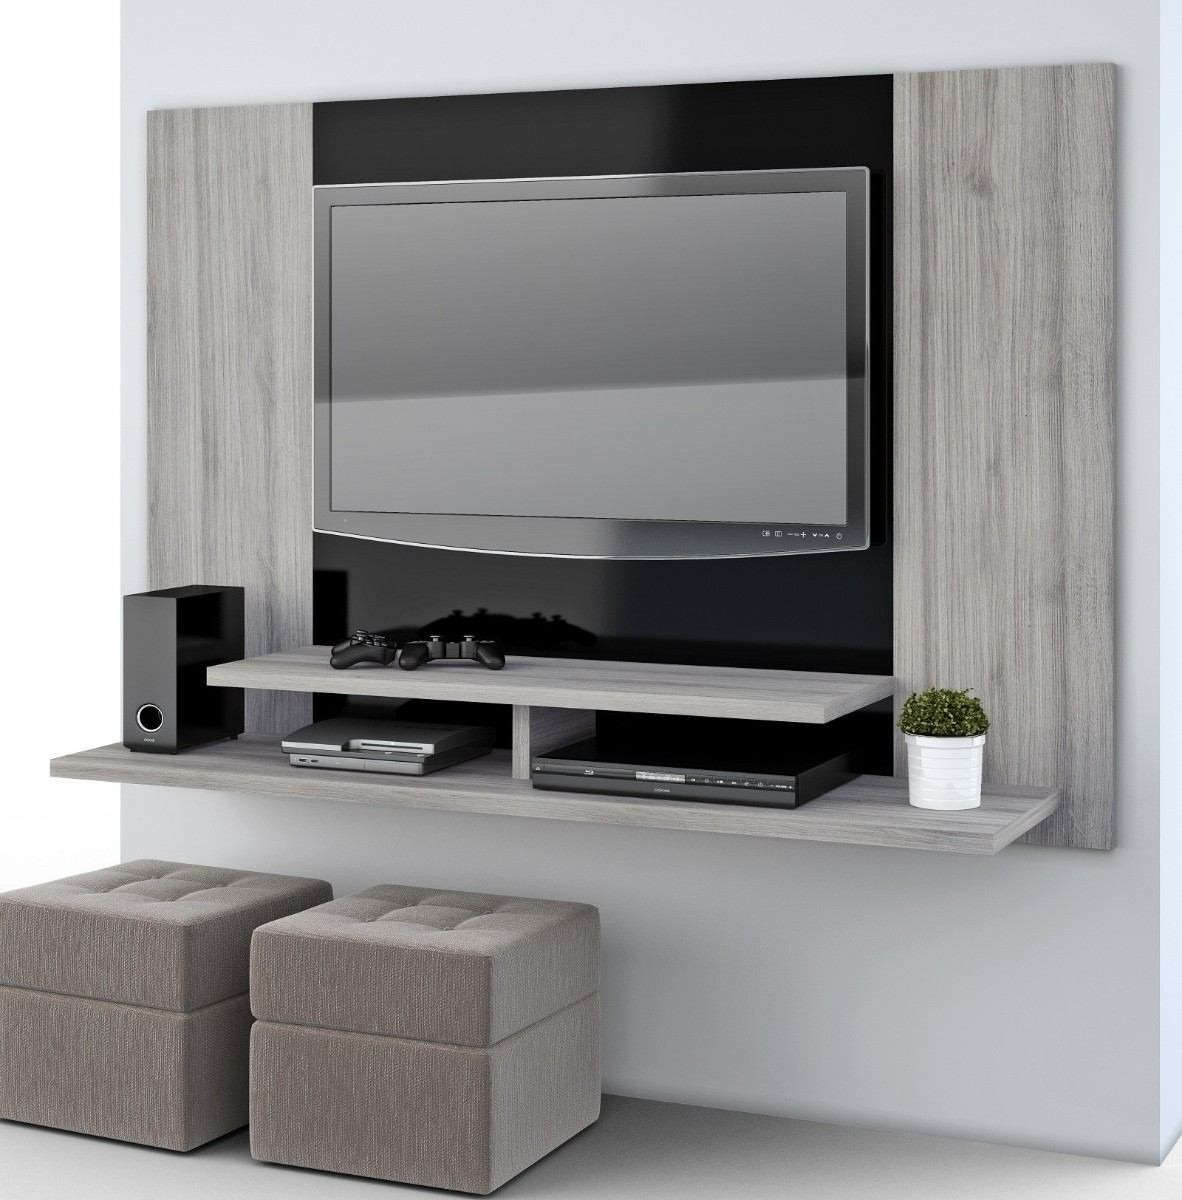 Mueble flotante para tv moderno ref manhatan for Decoracion mueble tv